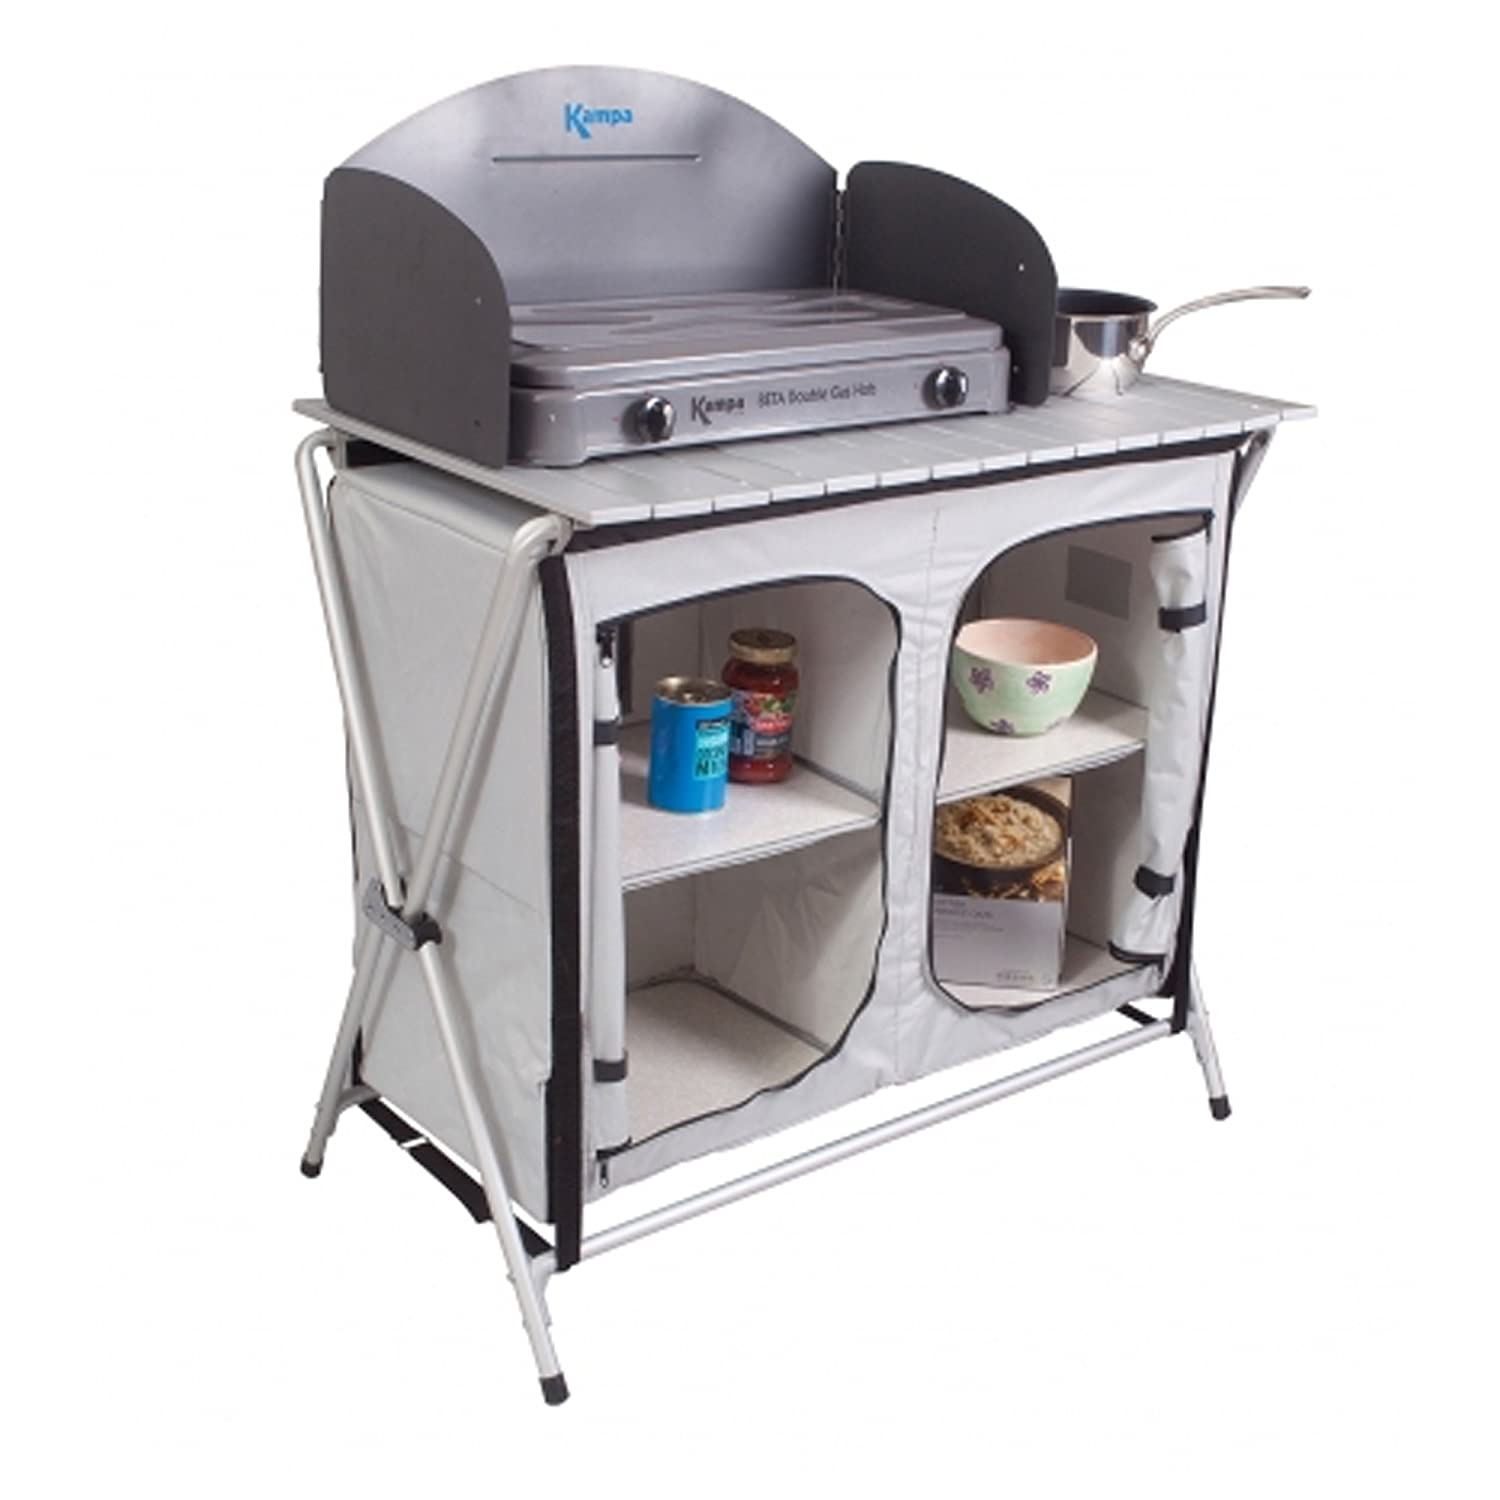 Kampa - Centurion Camping Field Kitchen: Amazon.co.uk: Sports & Outdoors